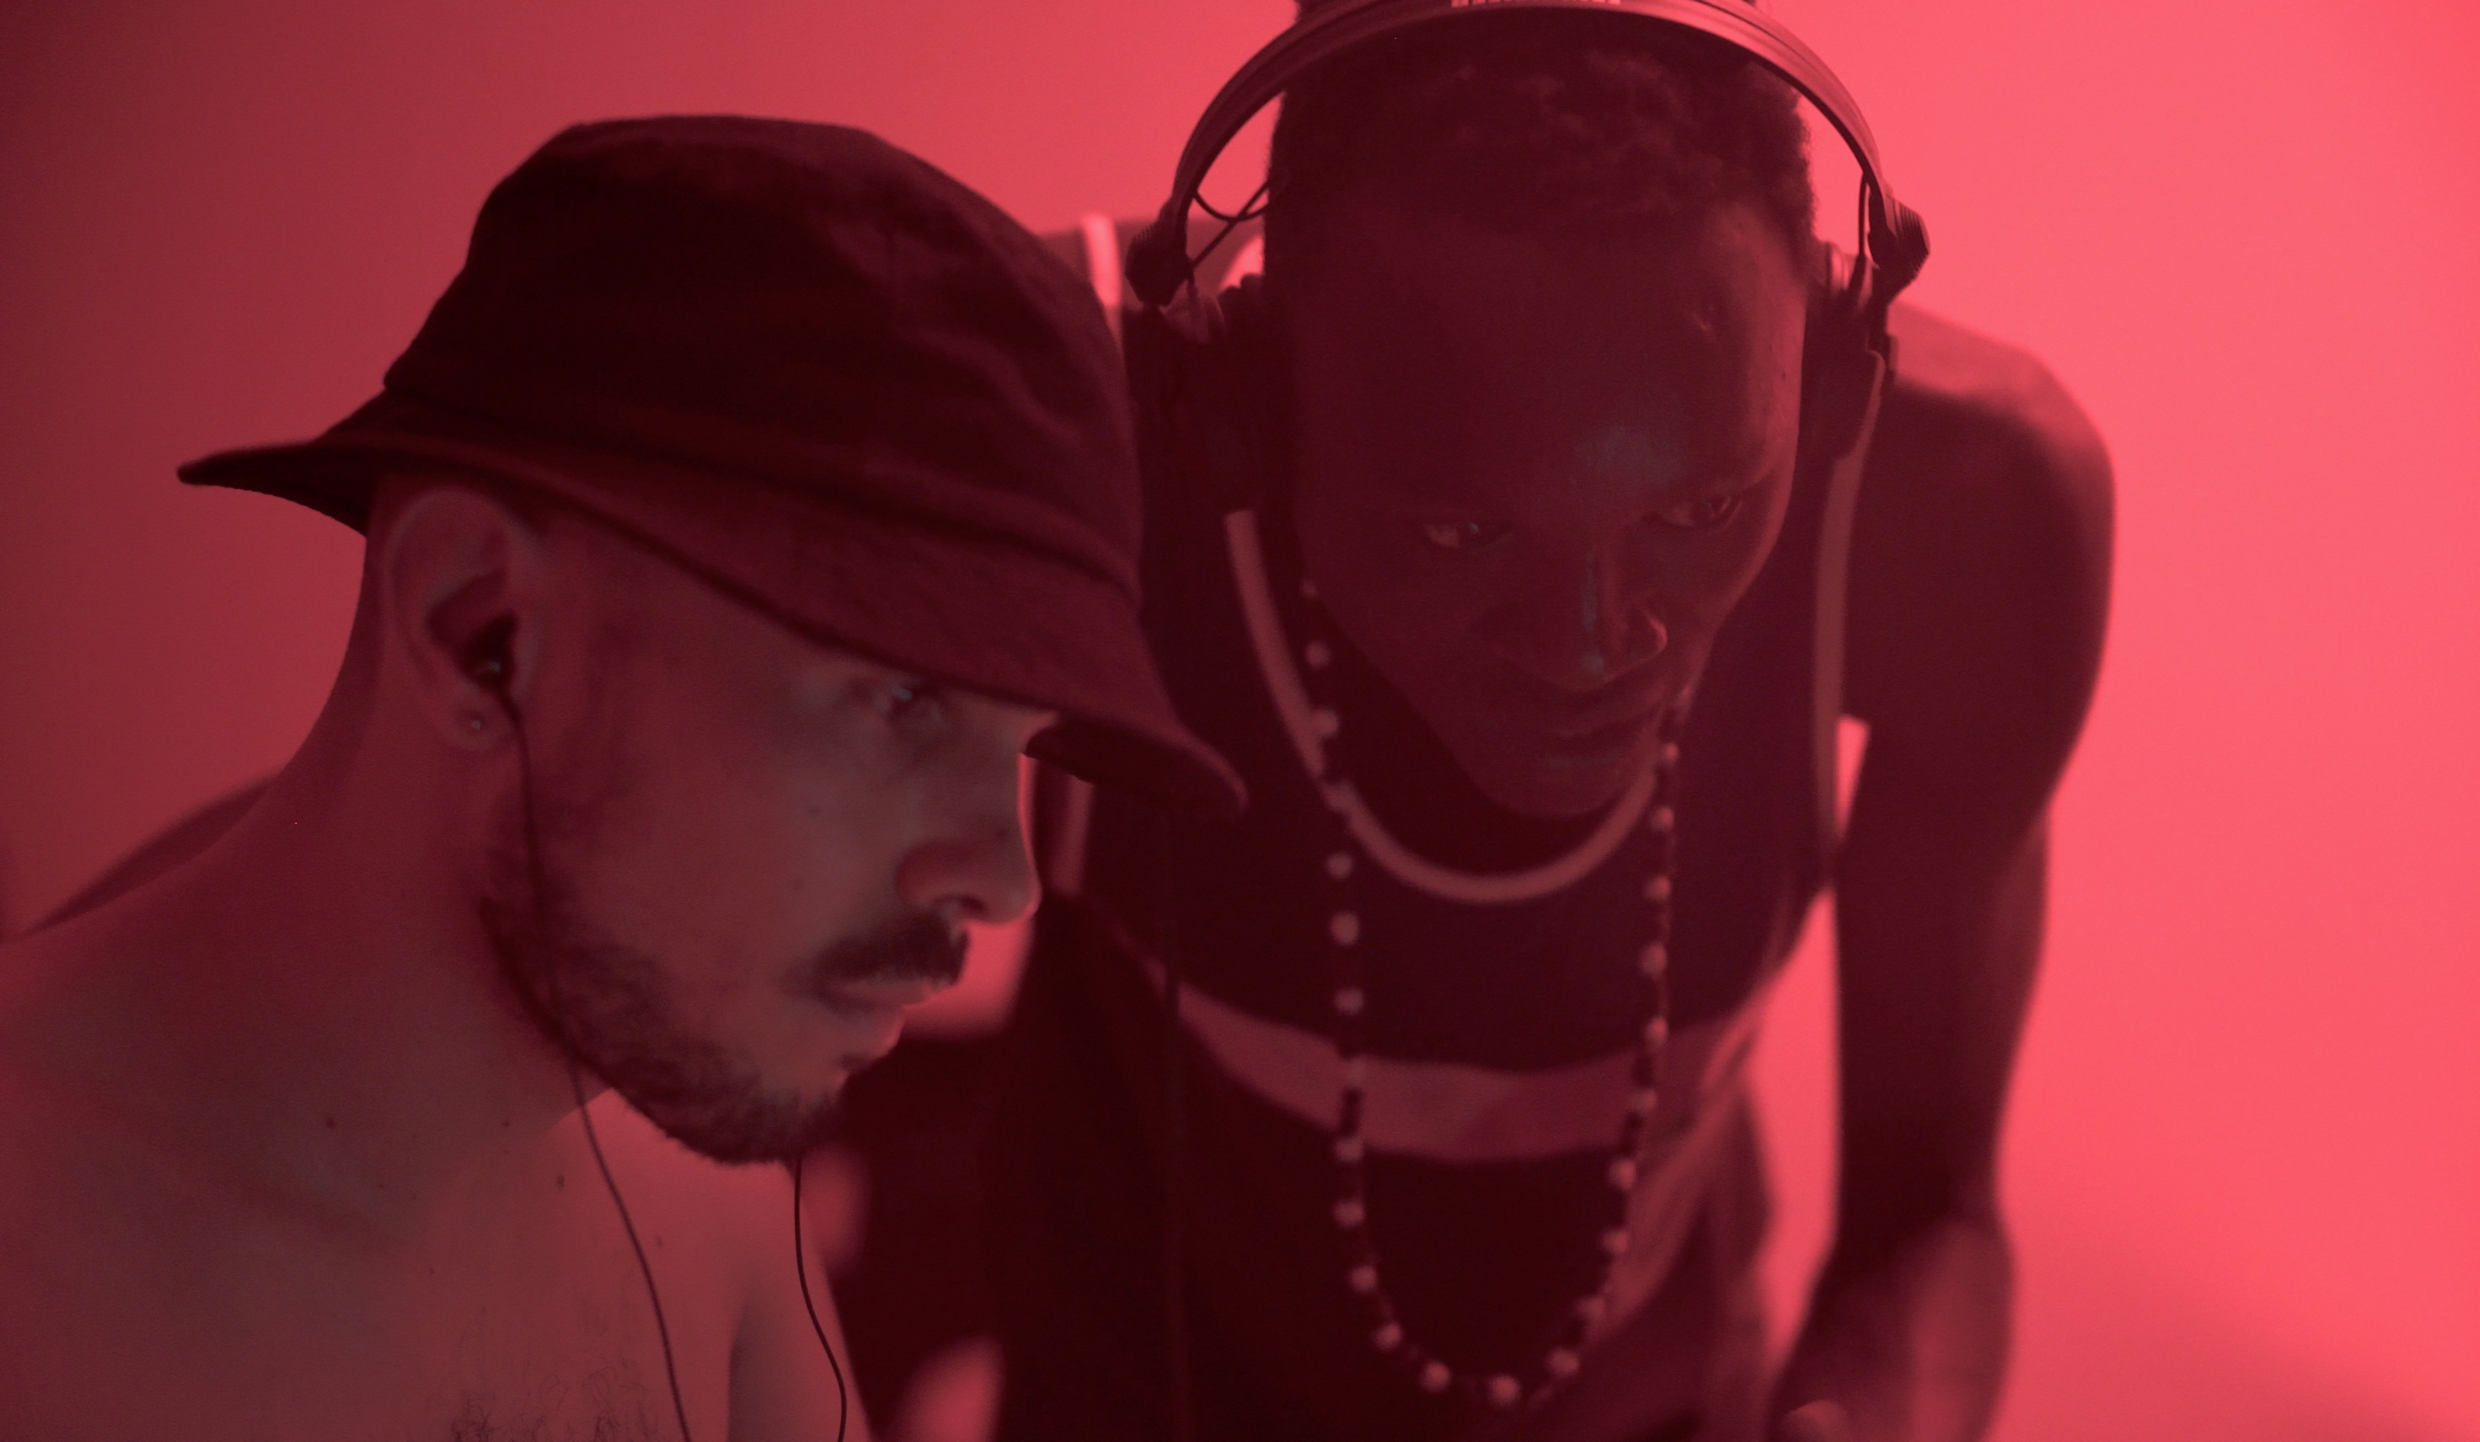 Swiss producer and beatmaker Flexfab recorded music with Kenyan rapper Ziller Bas in Kisili, Kenya in January 2020. Their EP Mugogo is out on 12 June.